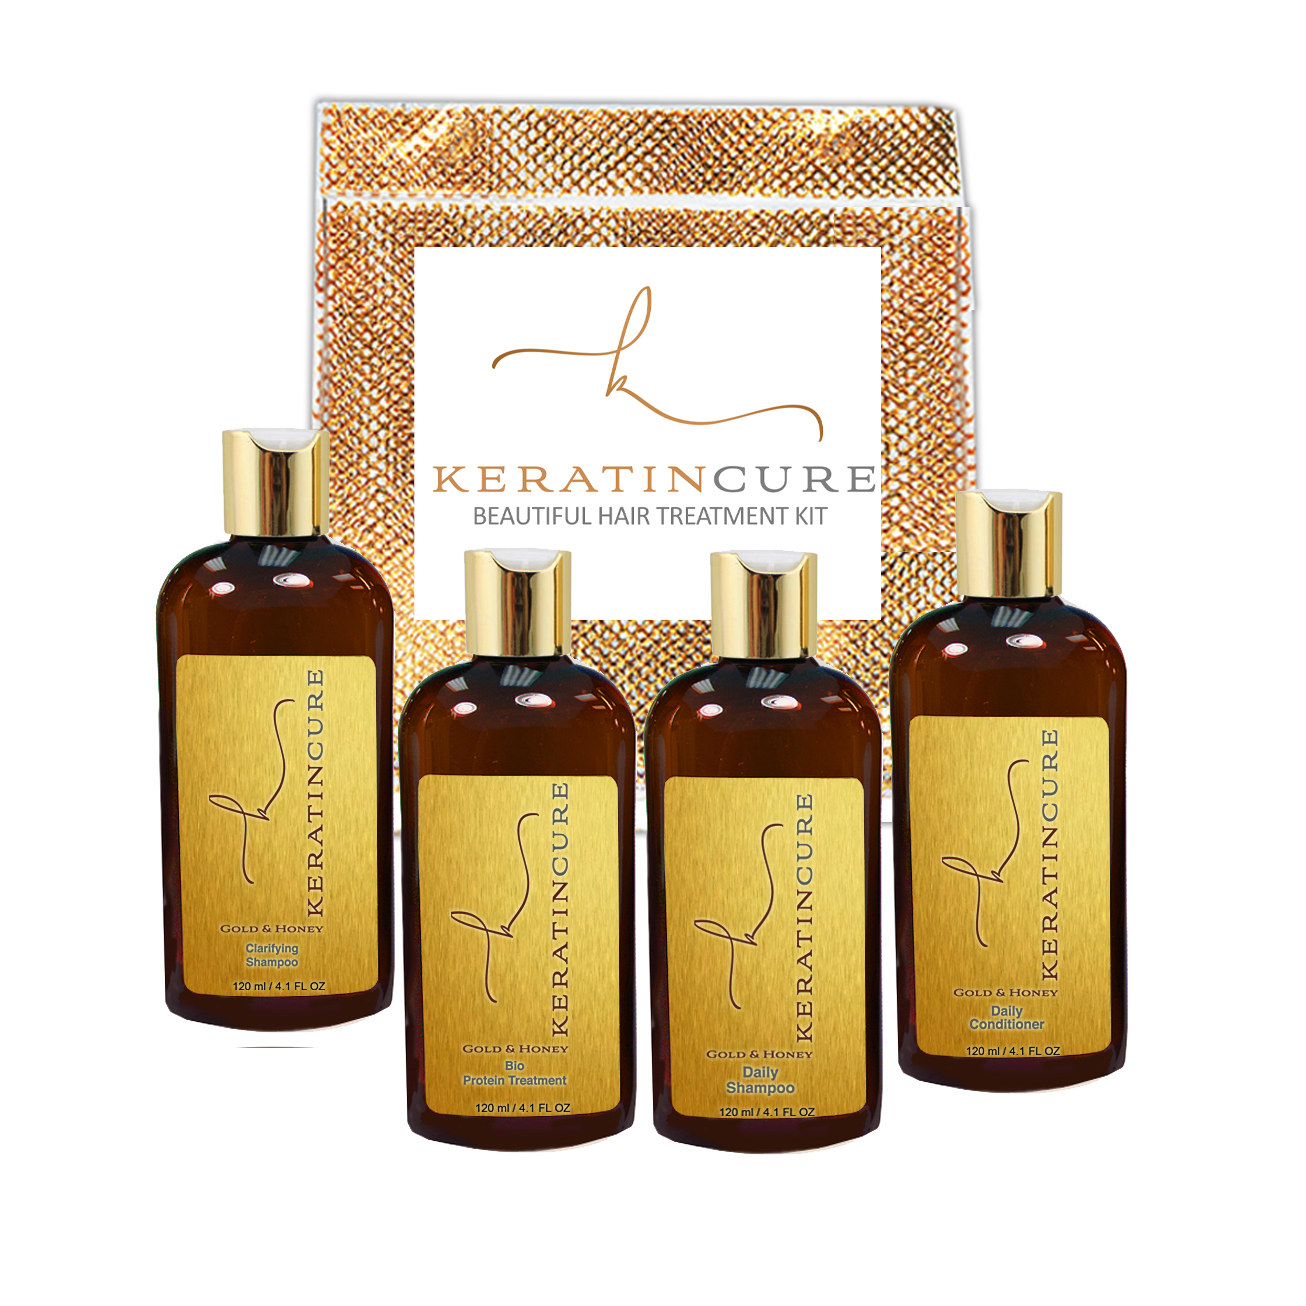 Keratin Cure Brazilian Complex Blow Out Gold & Honey Bio Protein Hair Smoothing Treatment Kit 5 pieces 120 ML 4 oz